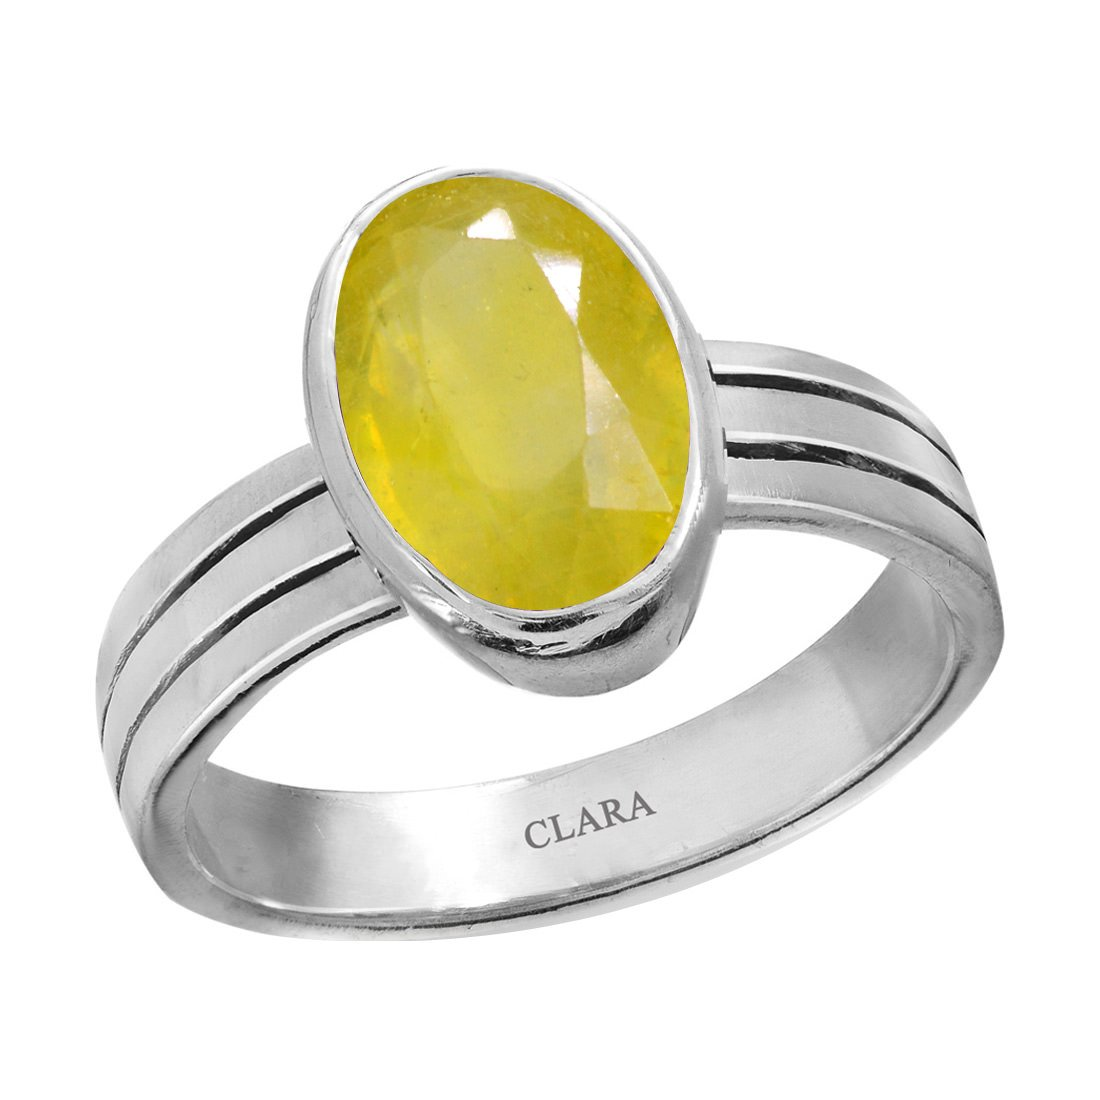 Clara Certified Yellow Sapphire (Pukhraj) 5.5cts or 6.25ratti original stone Stunning Sterling Silver Astrological Ring for Men and Women by Clara